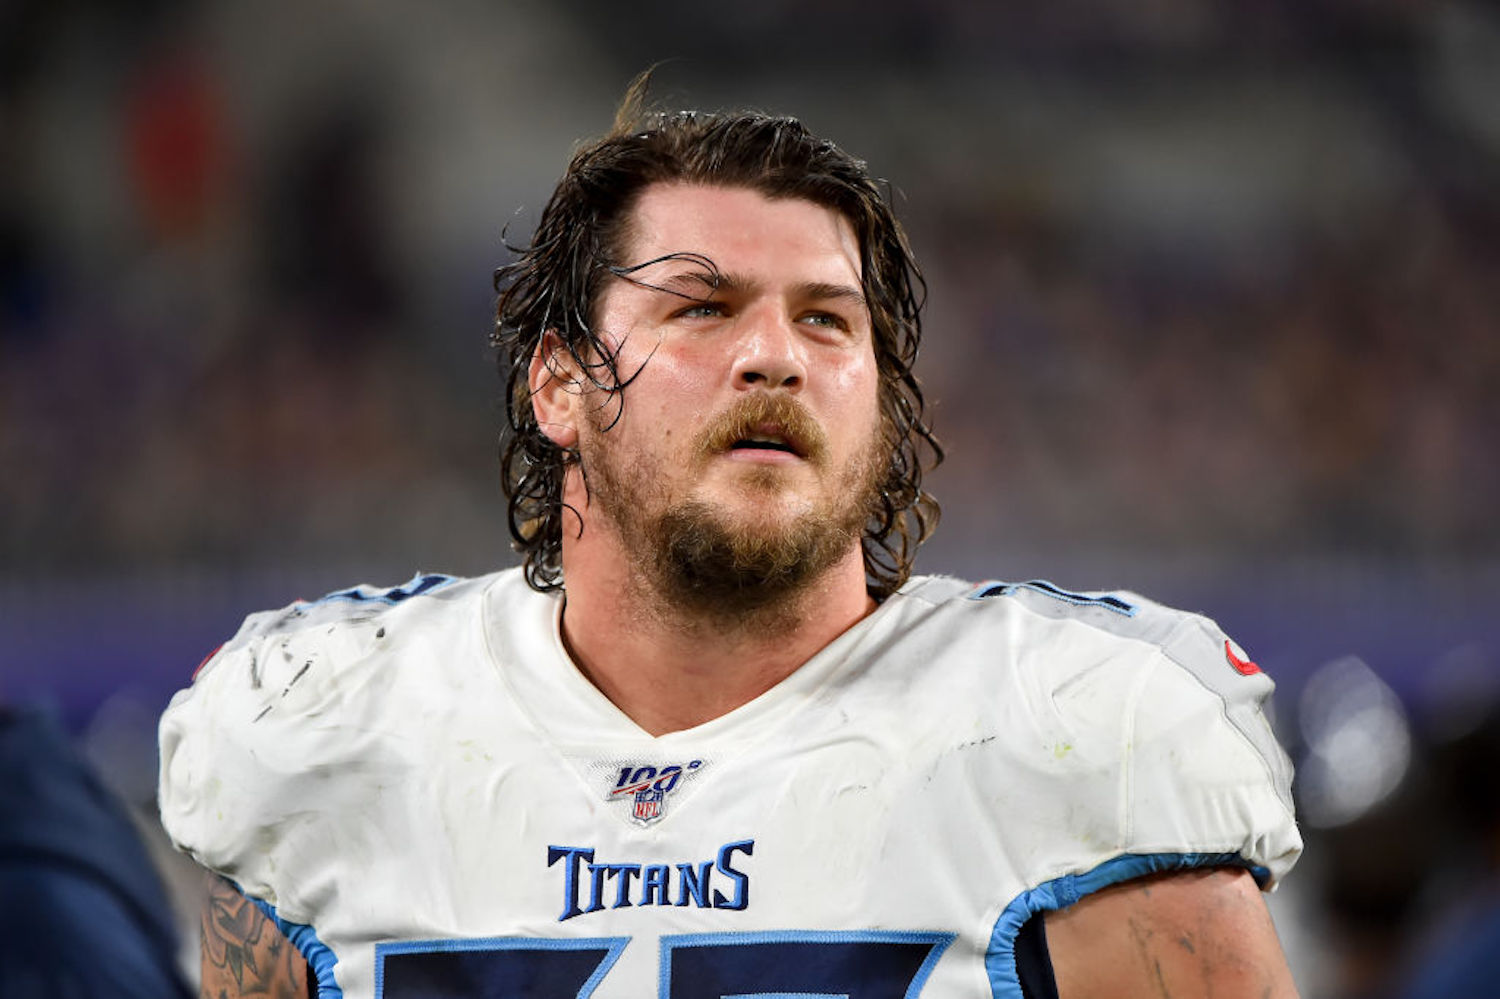 Taylor Lewan is one of the most important players on the Tennesee Titans, so his season-ending injury is a devastating blow to the team.